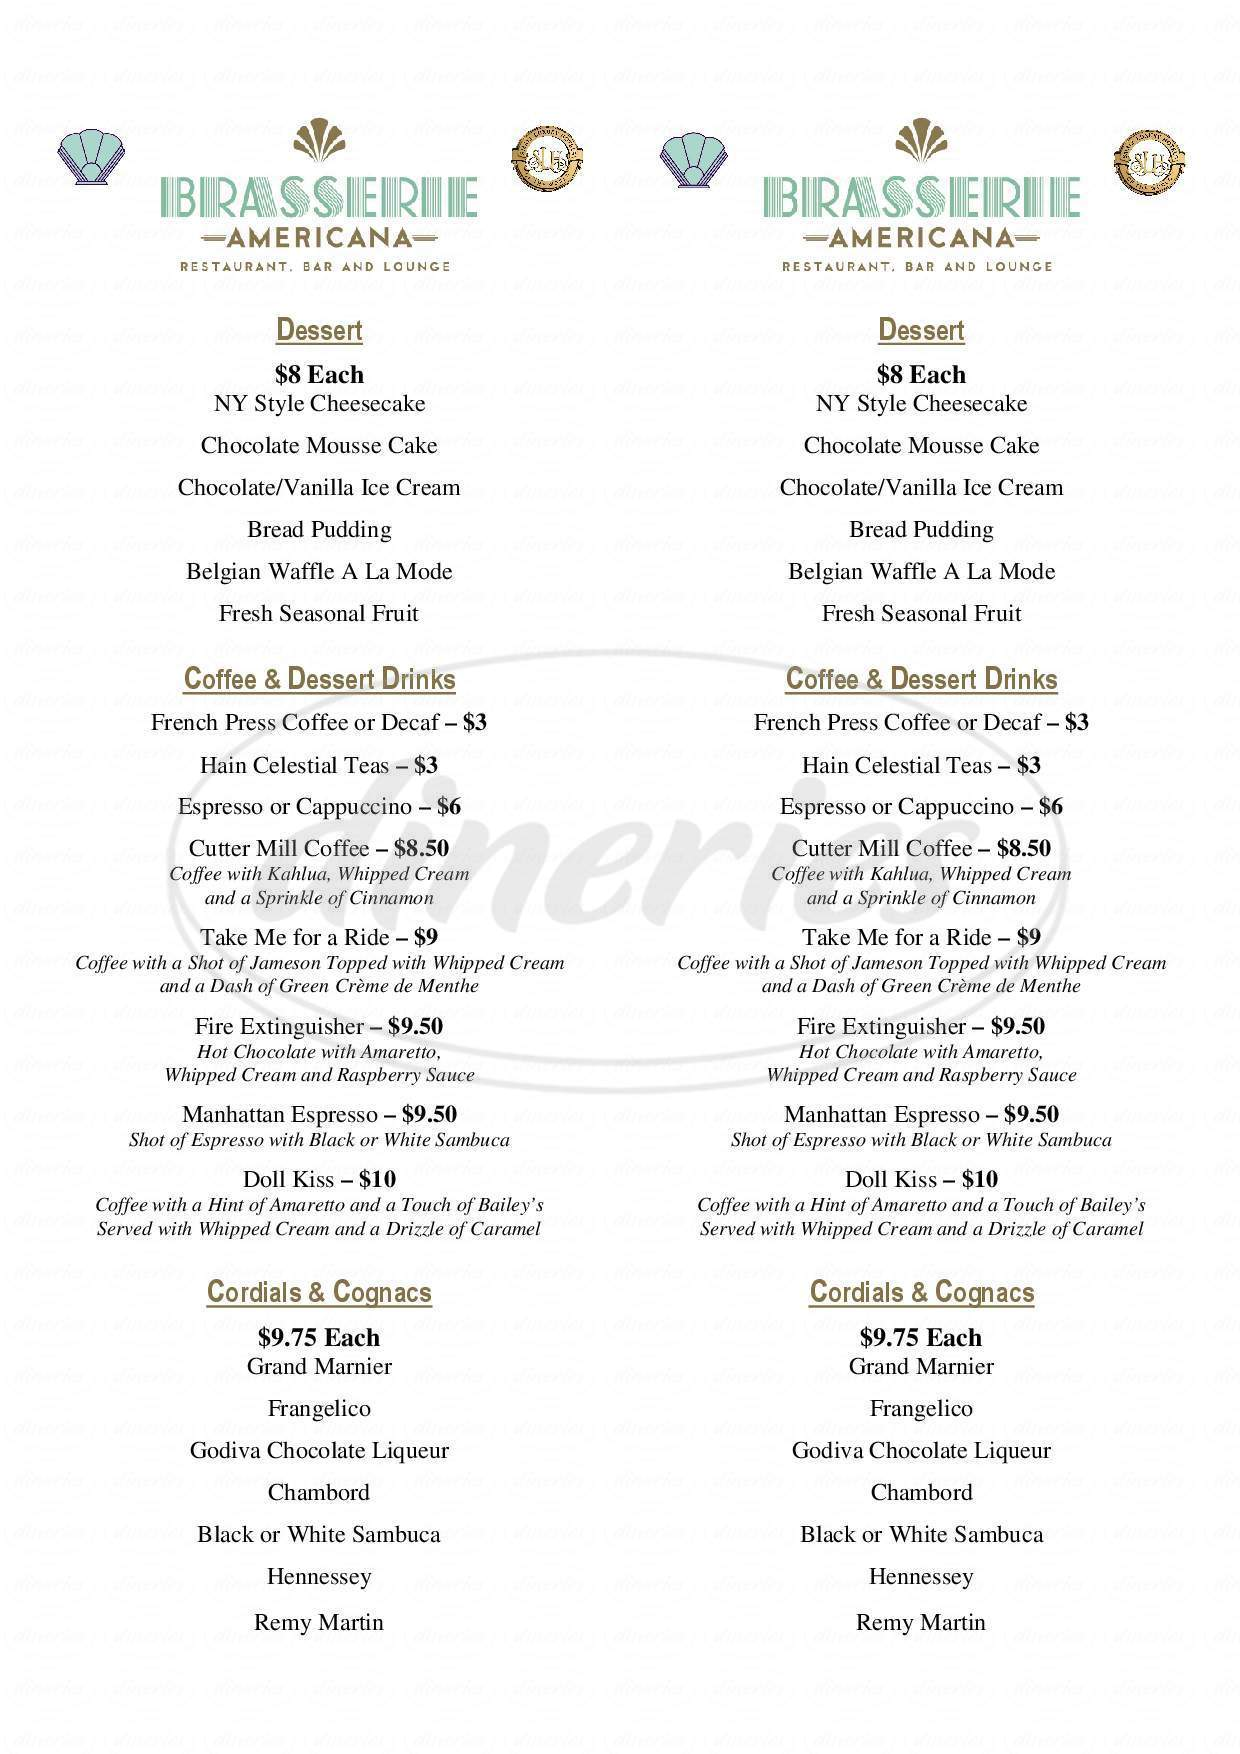 menu for Brasserie Americana